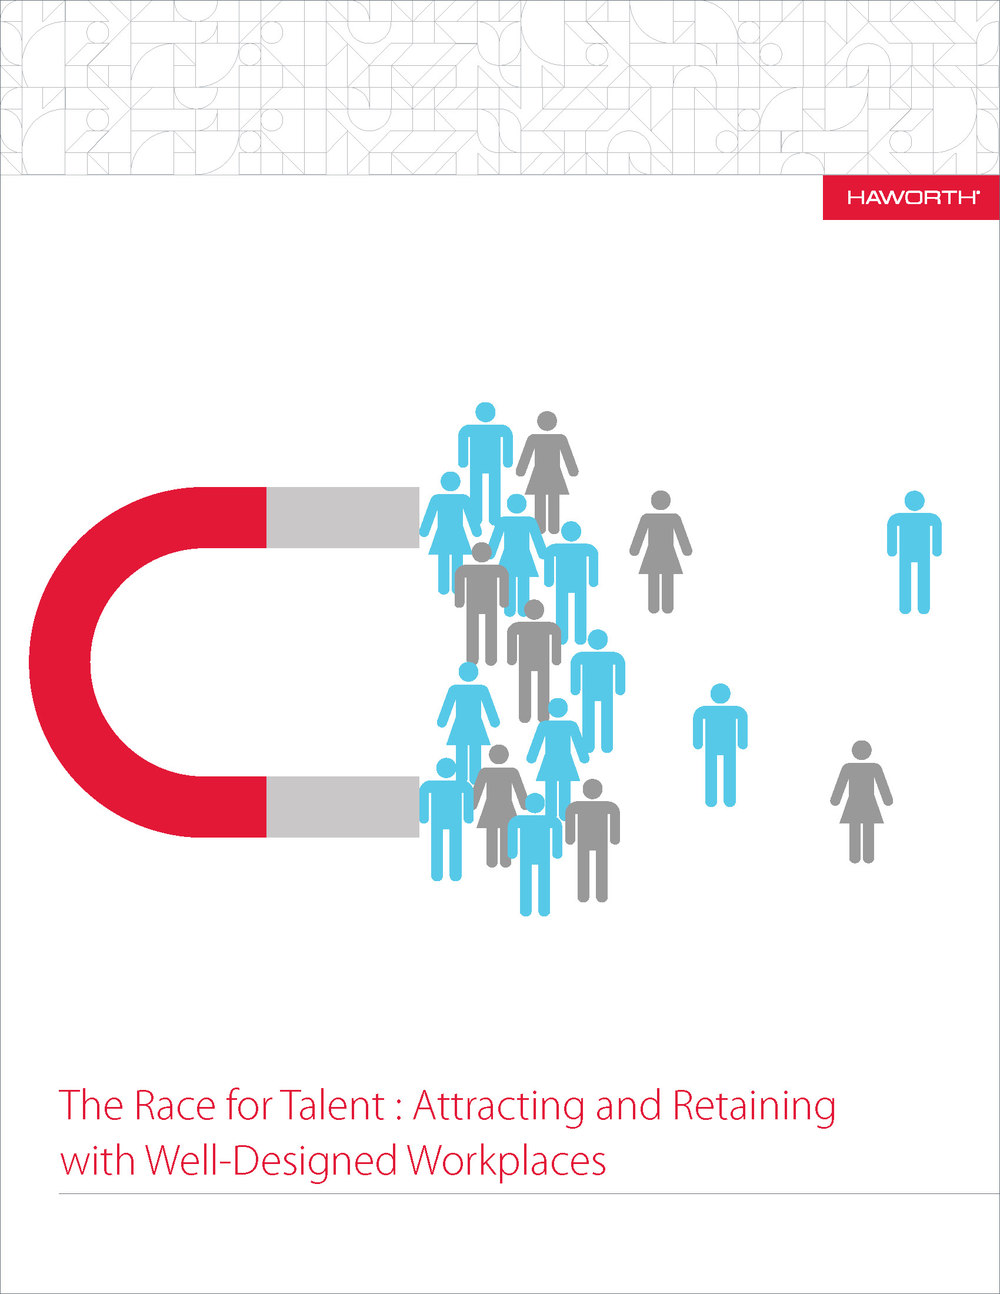 The Race for Talent: Attracting and Retaining: with Well-Designed Workplaces:  courtesy of Haworth